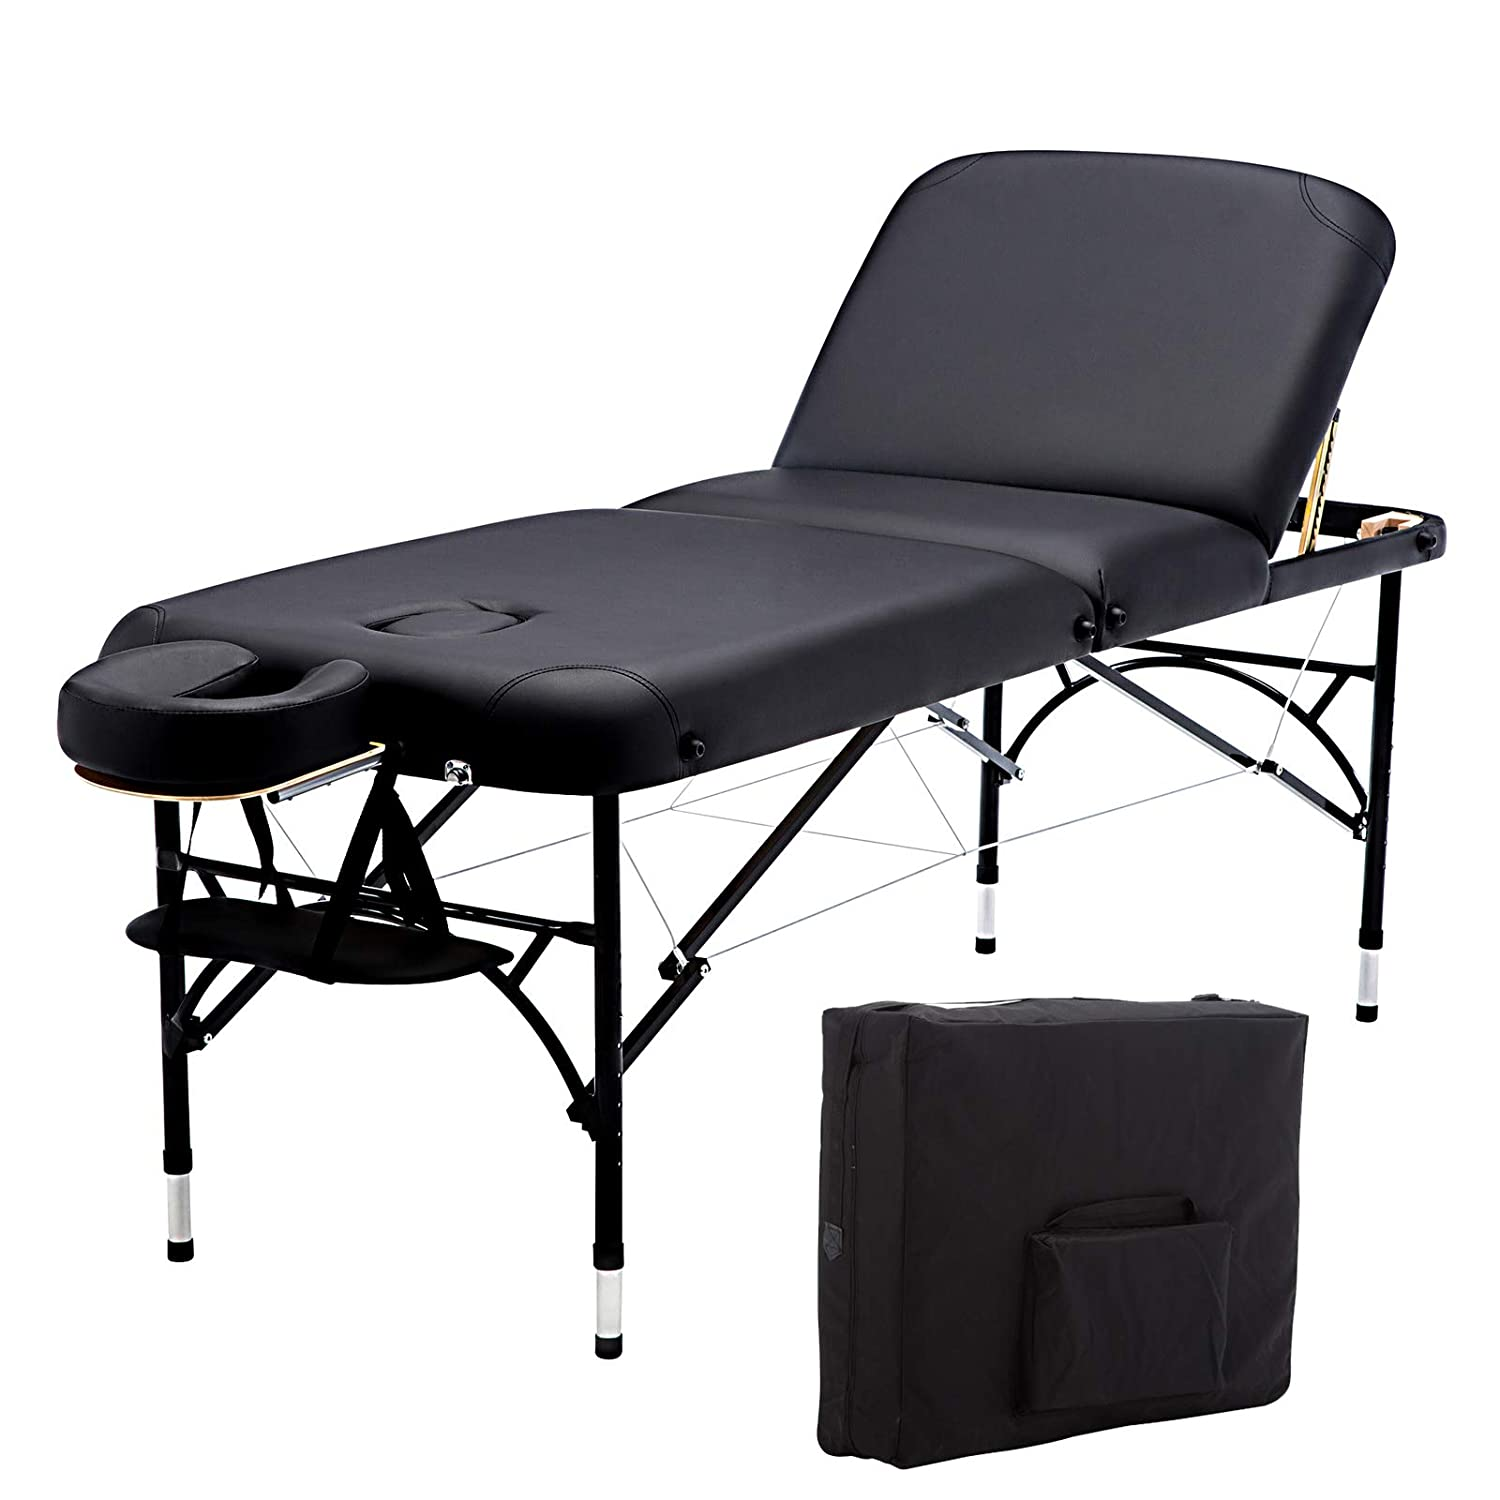 Artechworks 73 Long 28 Wide Professional 3 Folding Portable Lightweight Massage Table Facial Solon Spa Tattoo Bed With Aluminium Leg 2.56 Thick Cushion of Foam